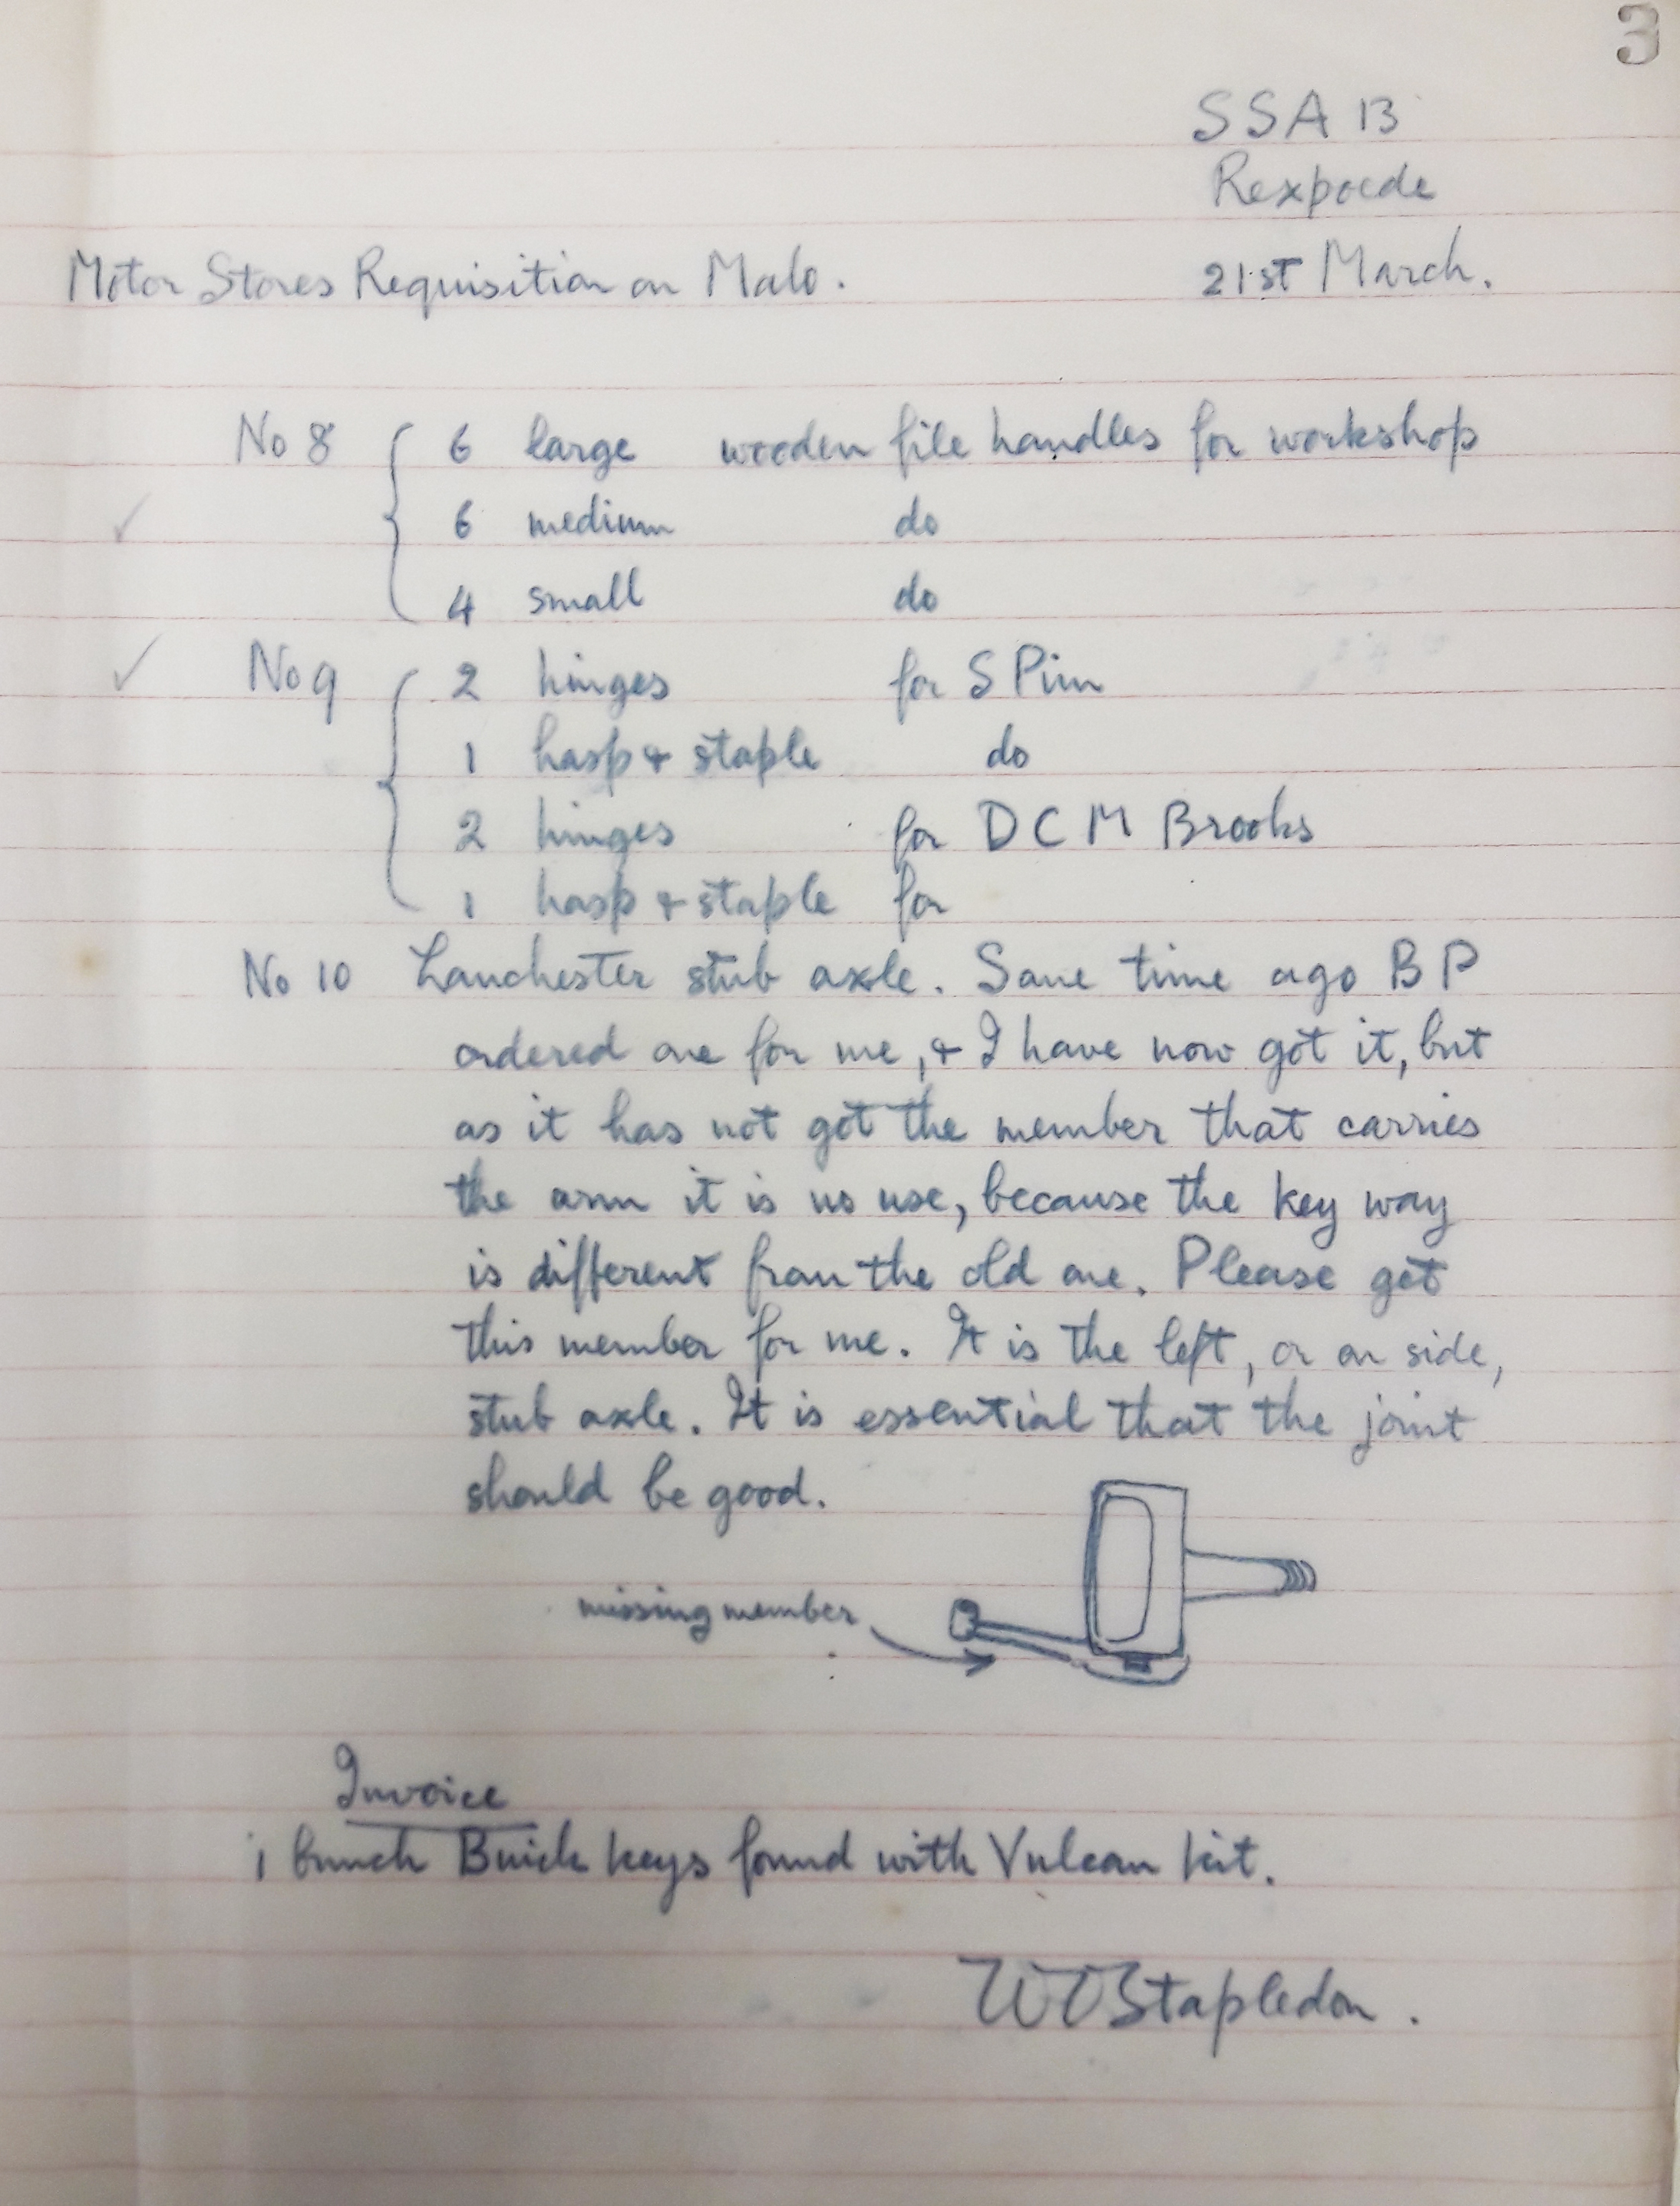 Requisitions book, Motor Store Records (TEMP MSS 881)